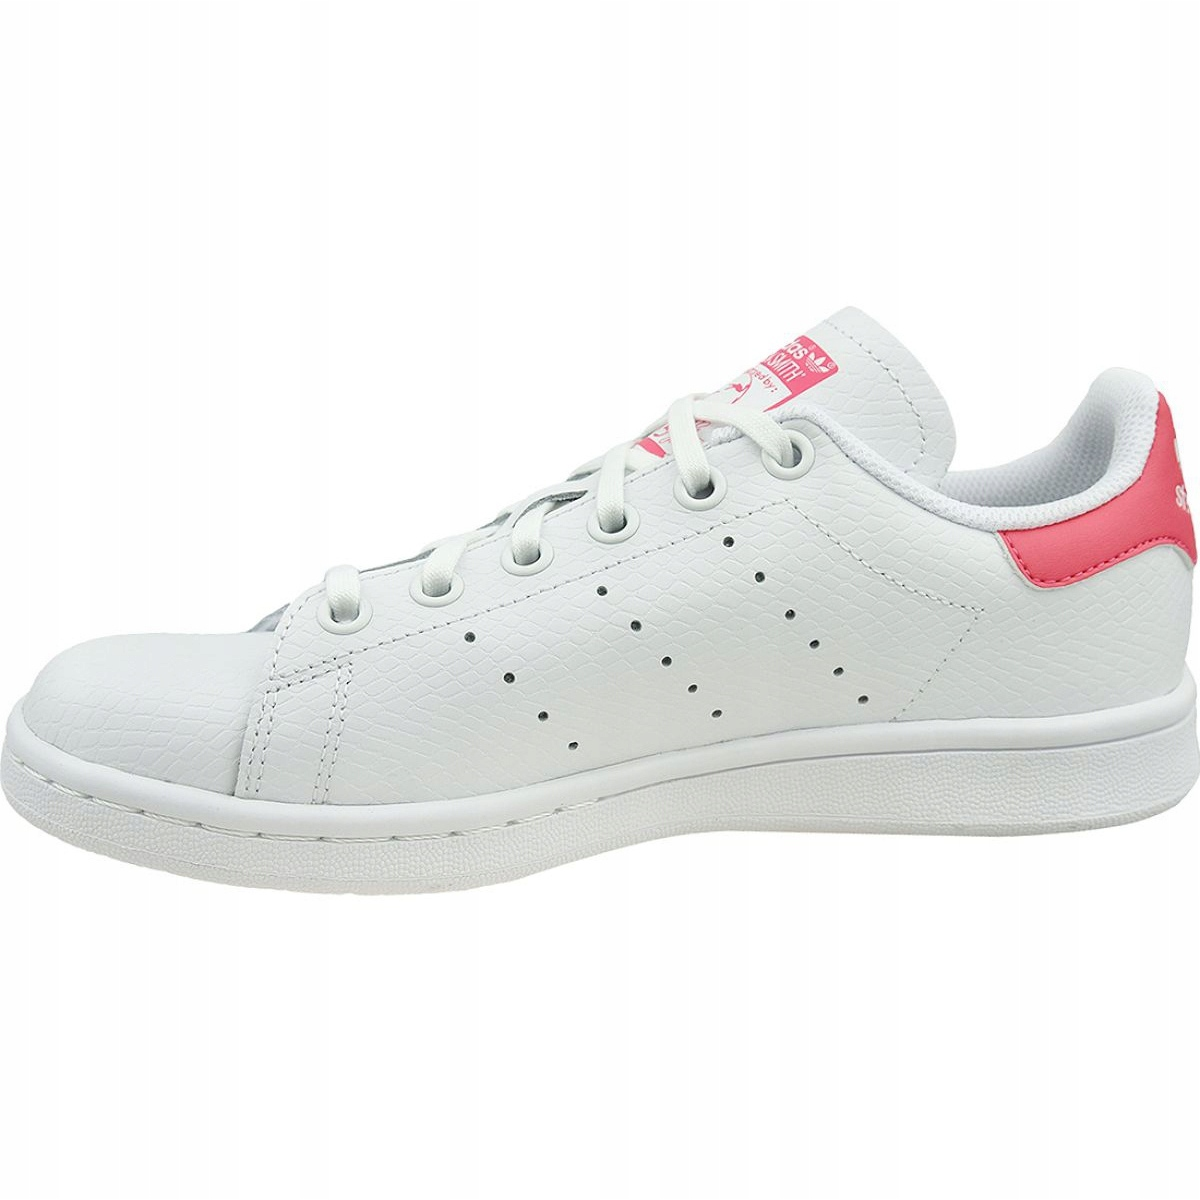 Adidas Stan Smith Jr EE7573 shoes white